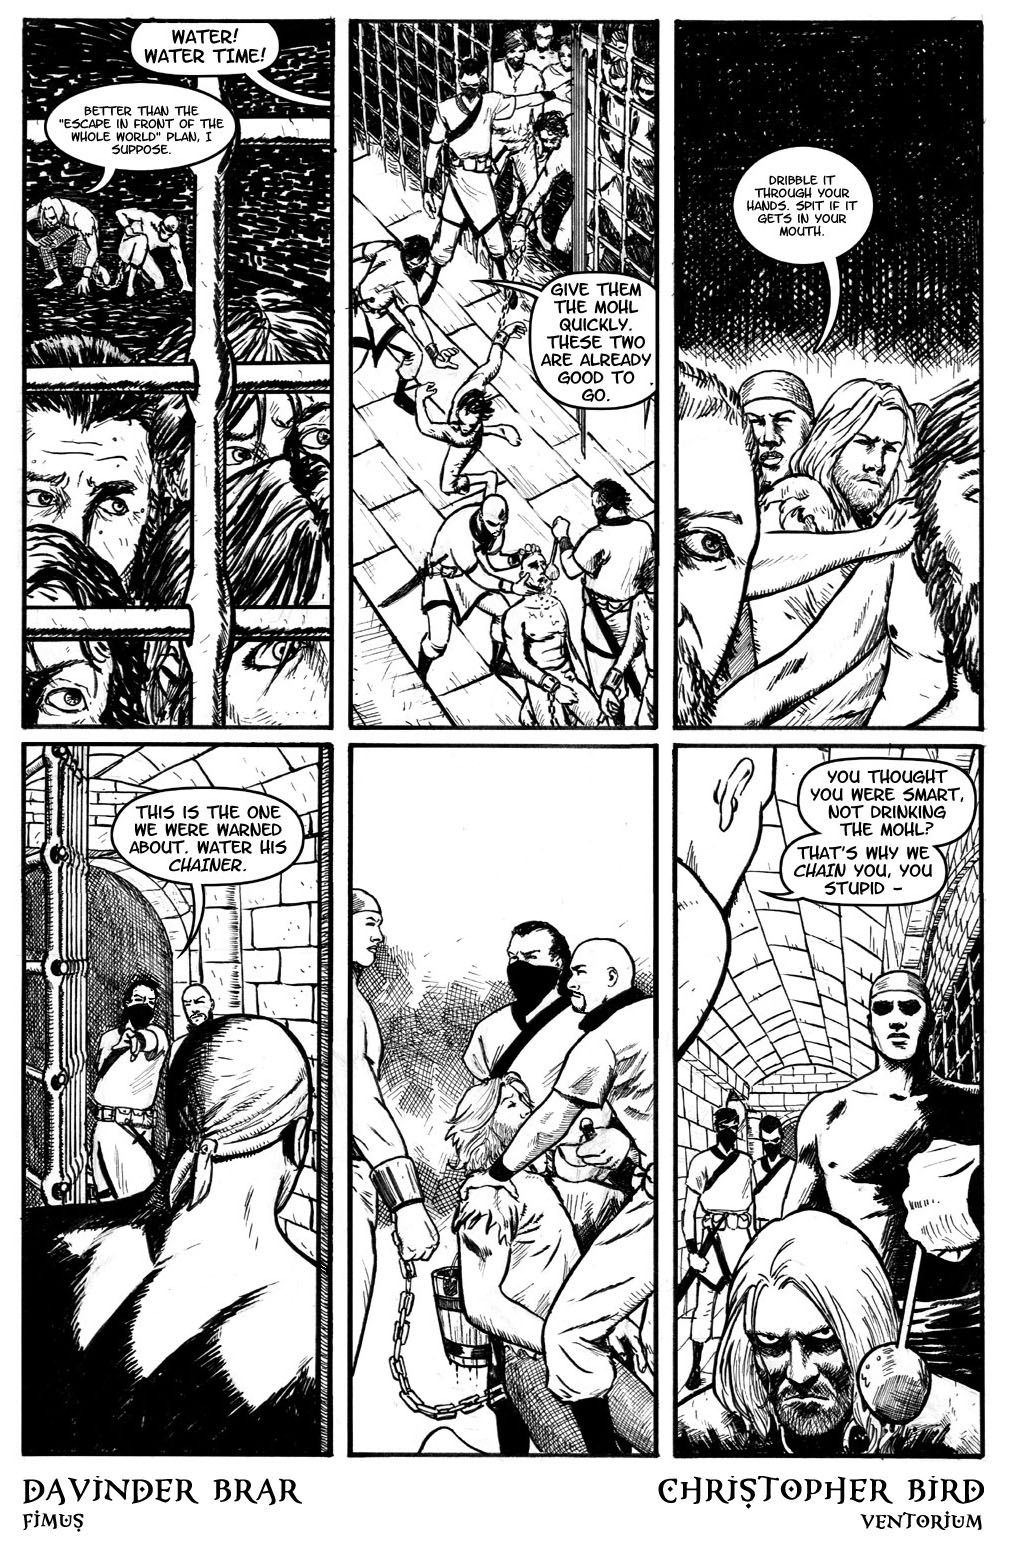 Book 2, page 14